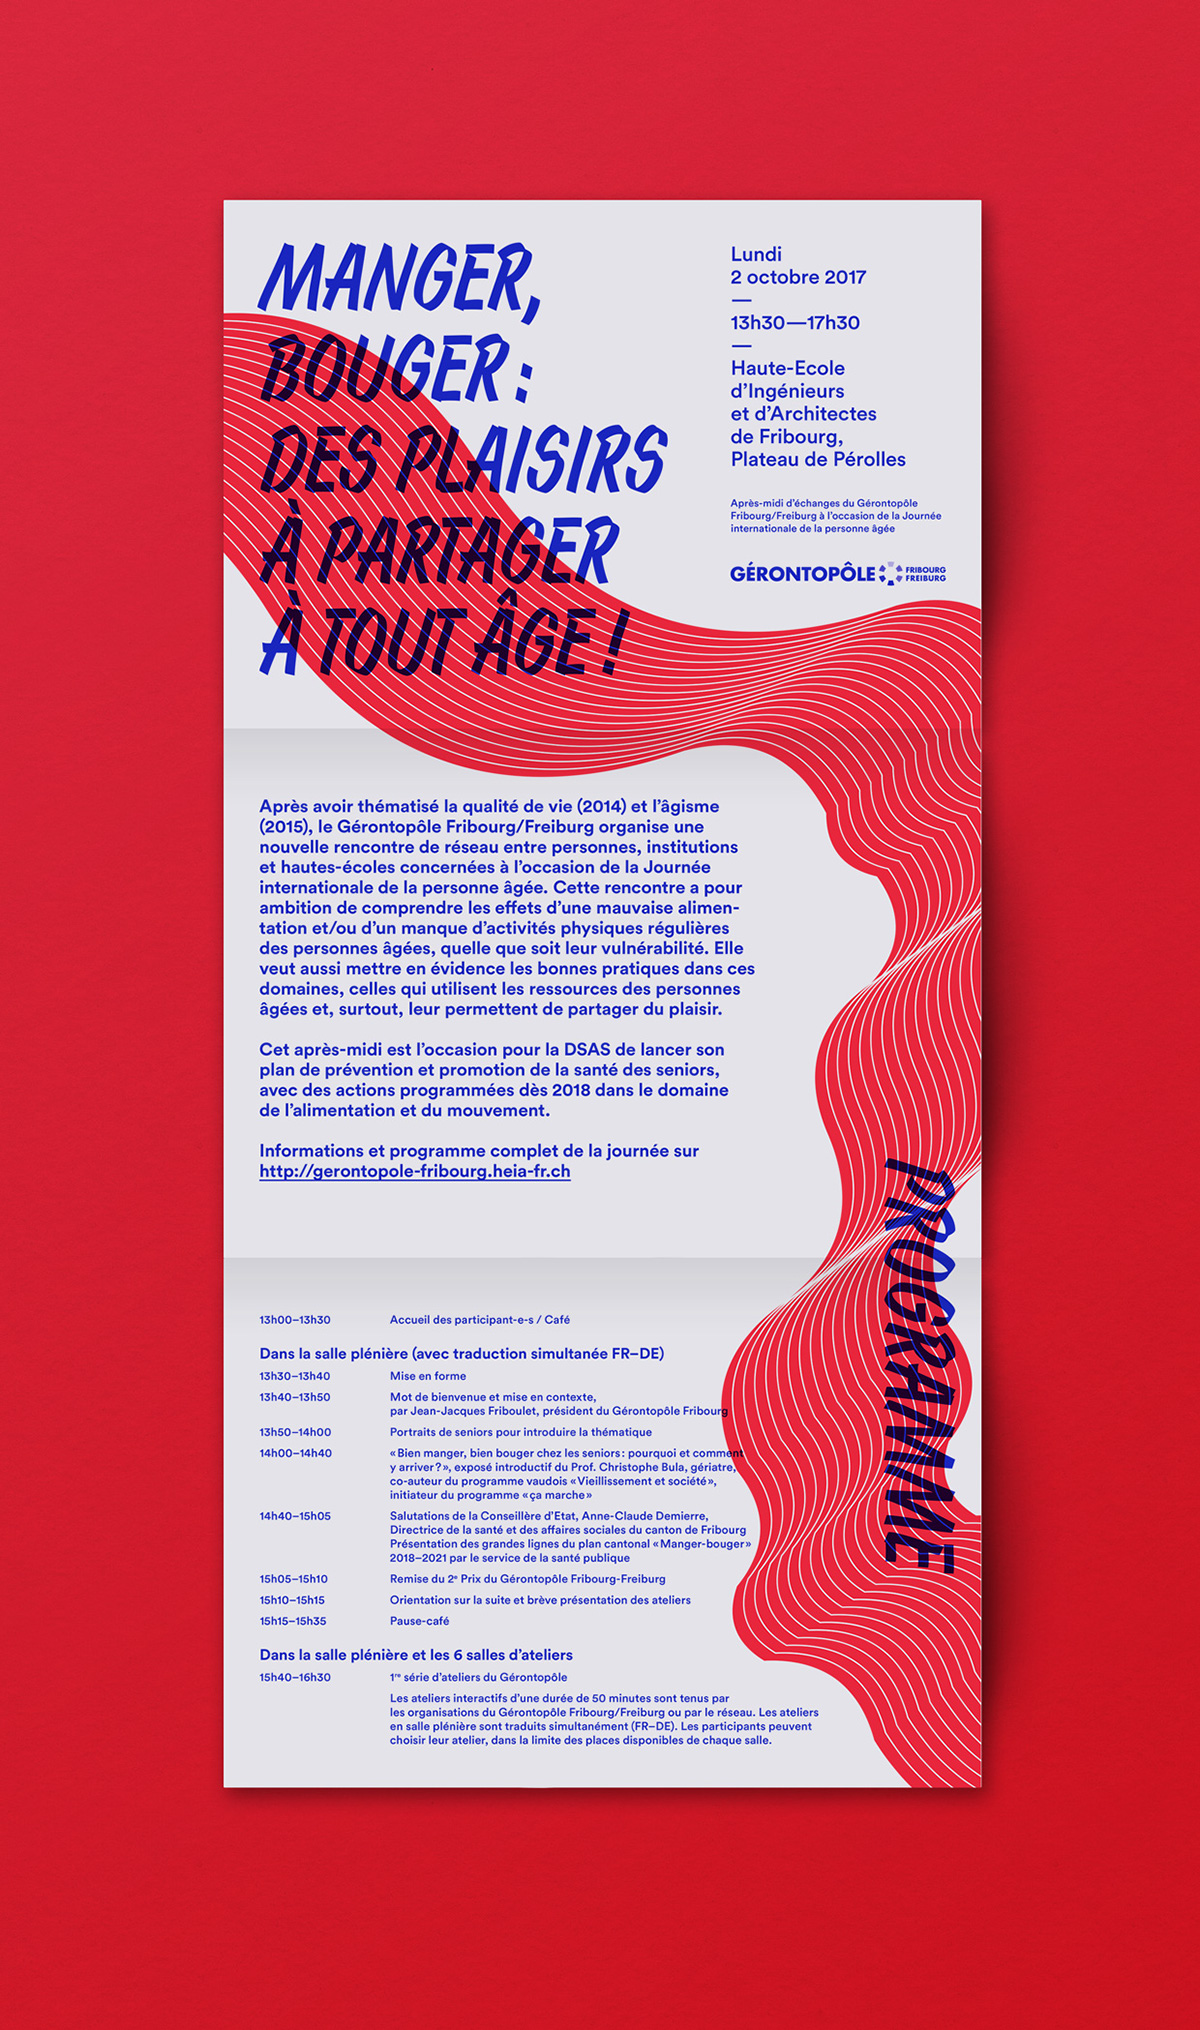 Programm,Health,Association,red,blue,typography  ,neon colors